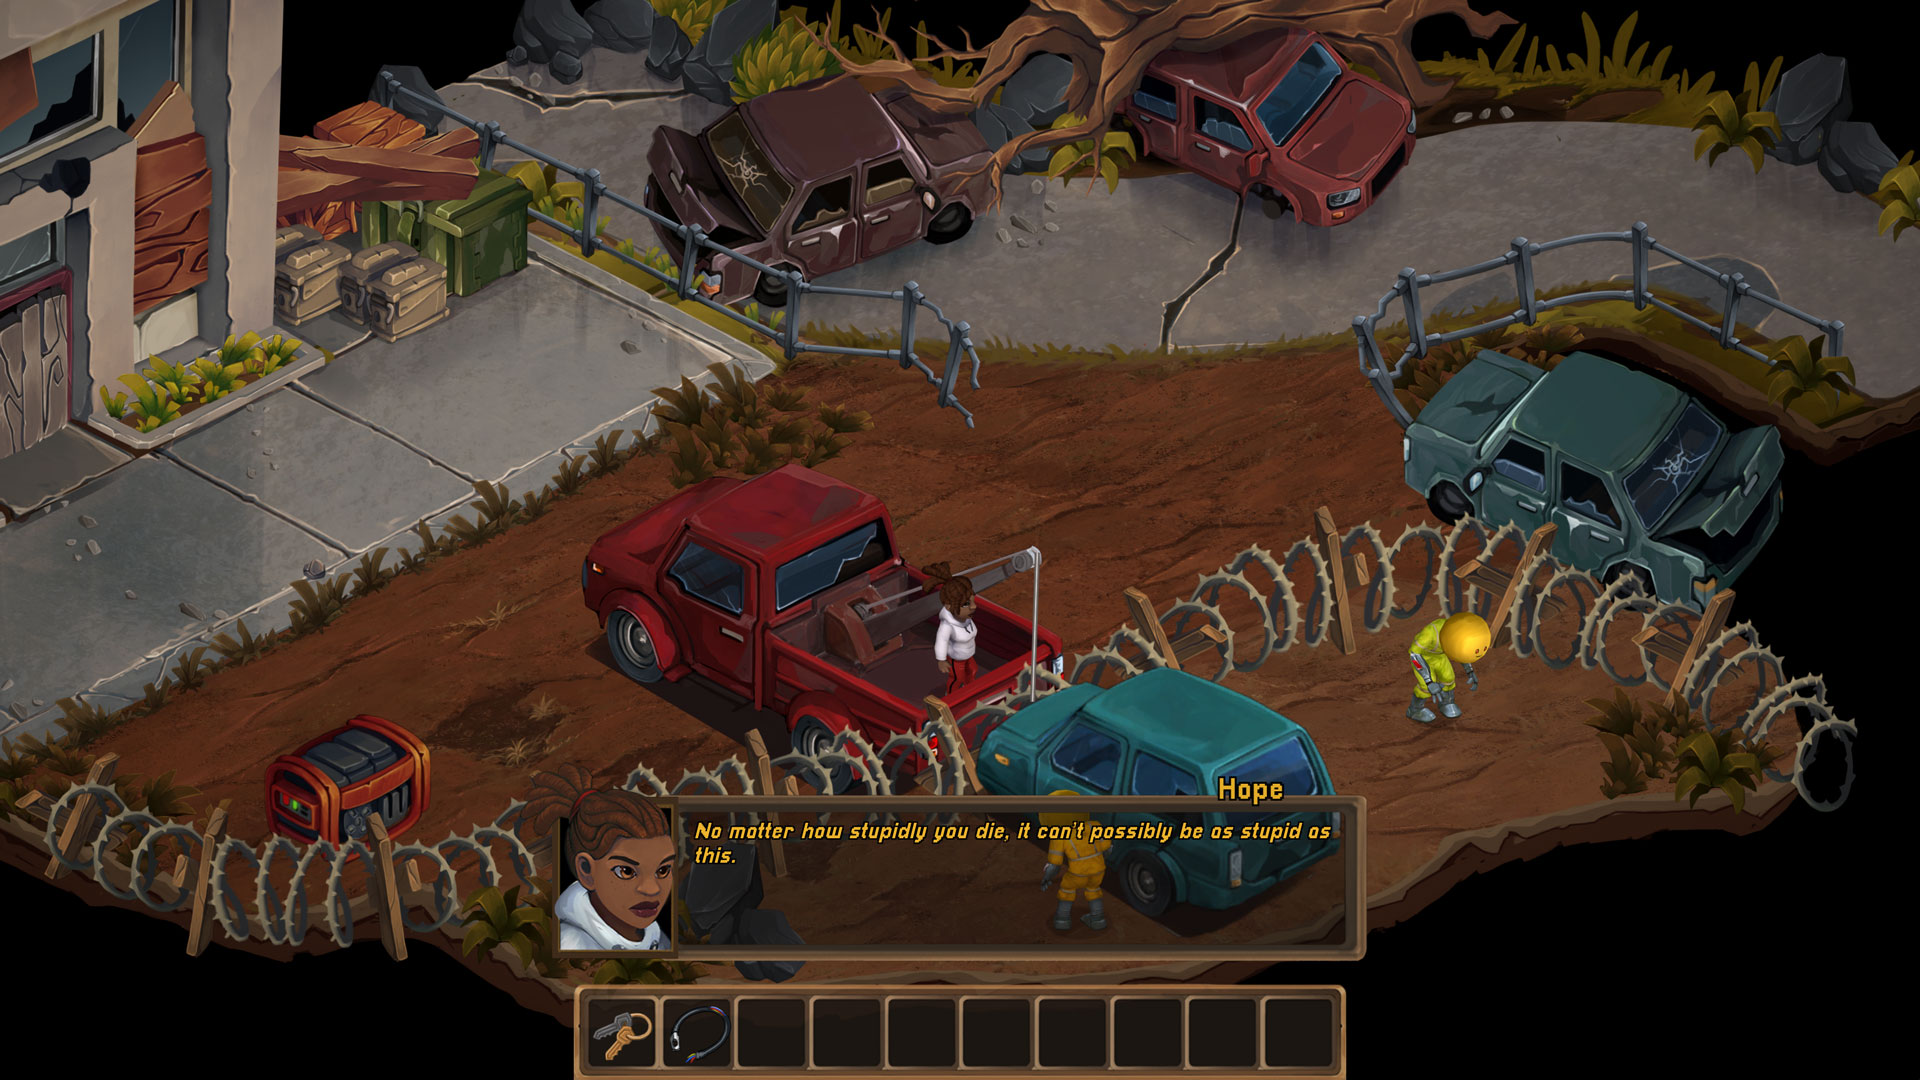 Land of Hope and Gorey screenshot